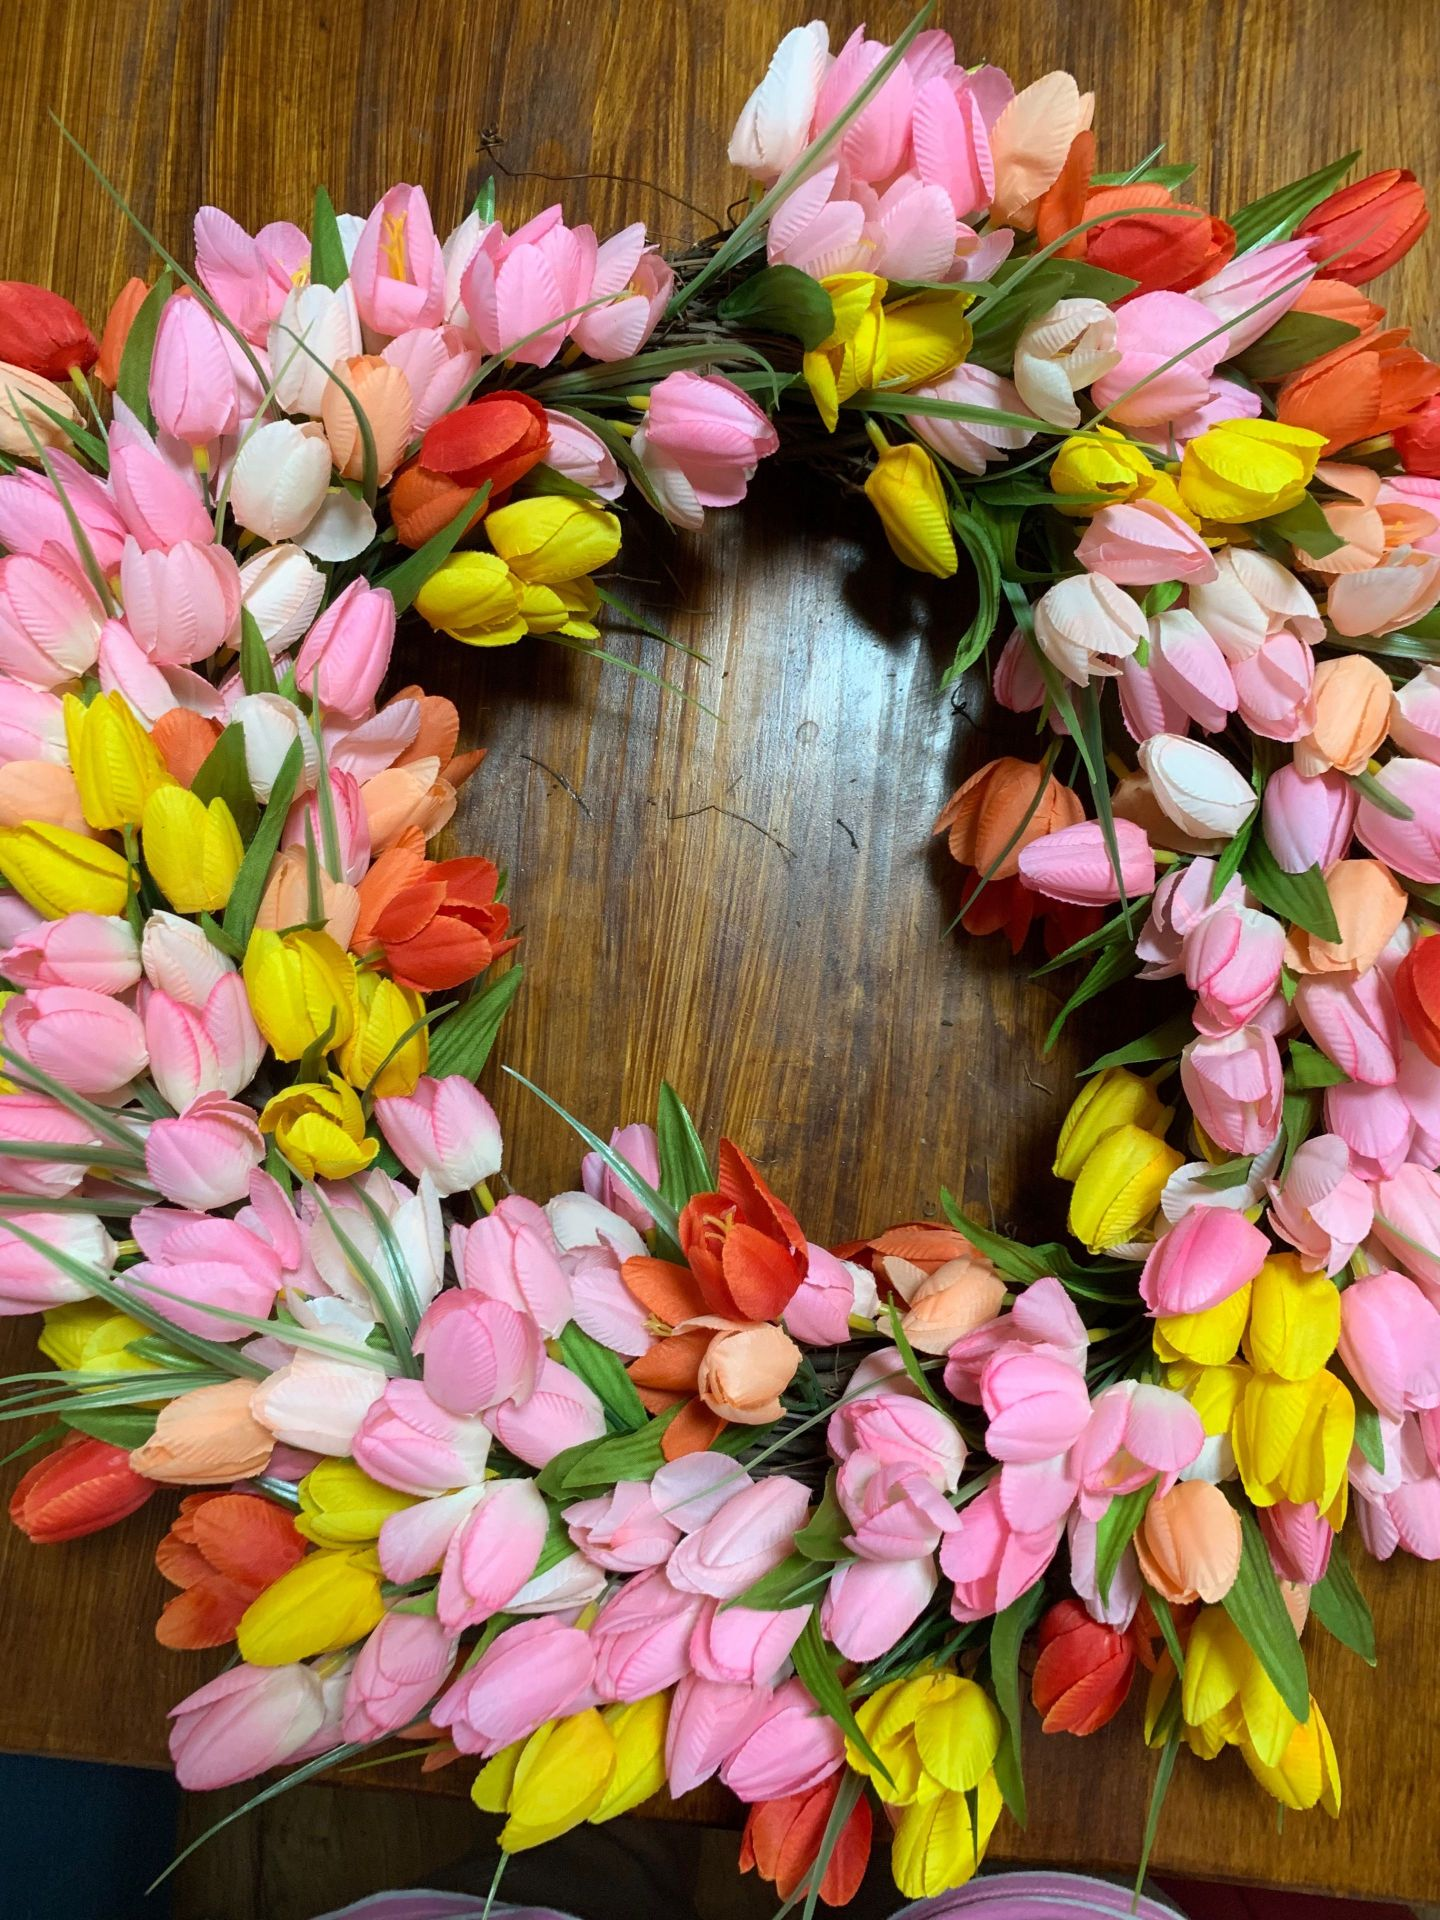 tulips7-2 Tulip Wreath DIY Tutorial: How to Add a Dash of Spring to Your Front Door